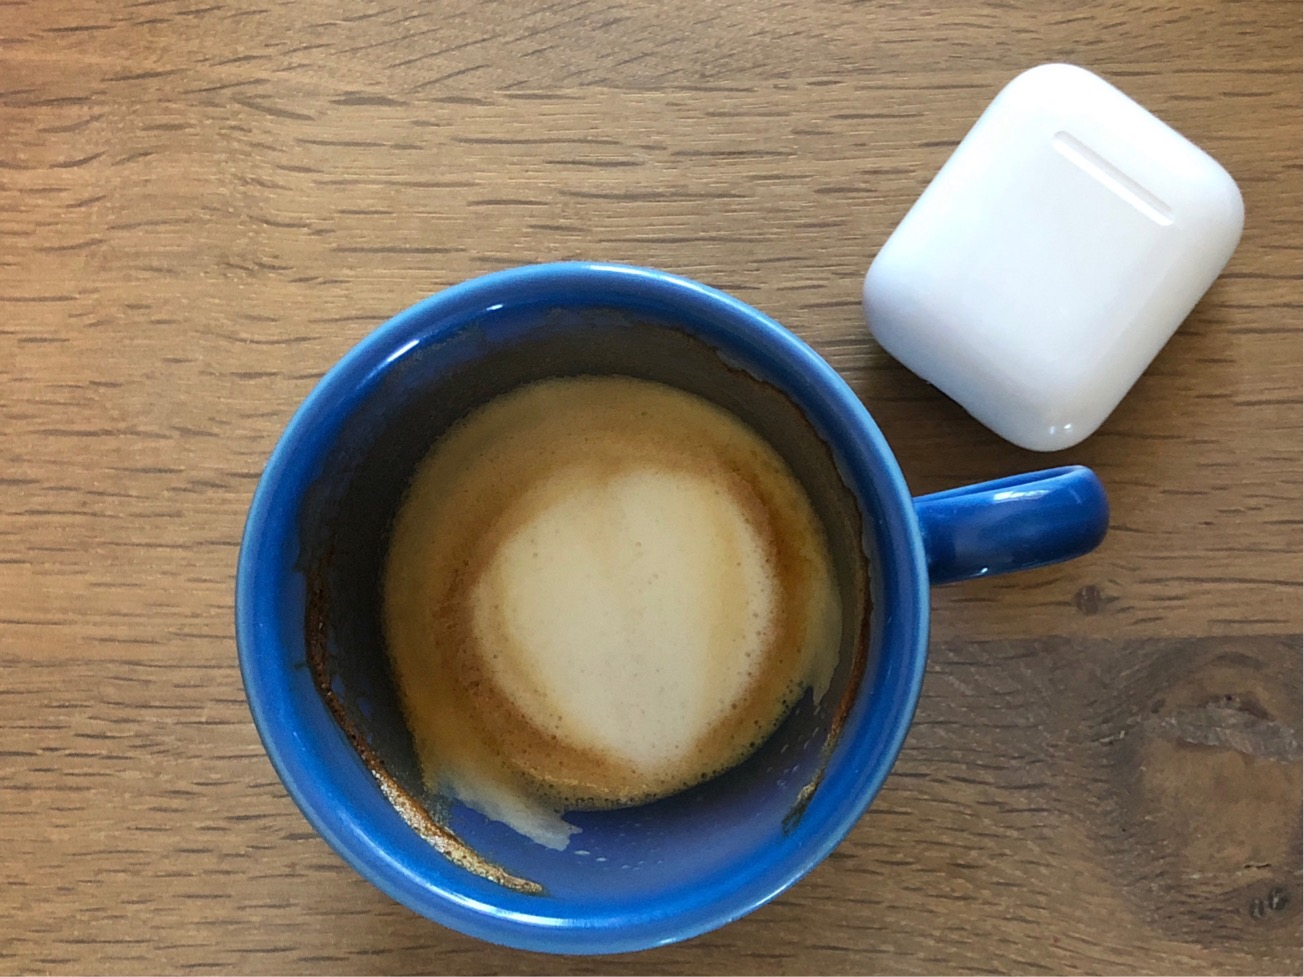 Blue almost empty coffee mug and an AirPods case on a wooden table.